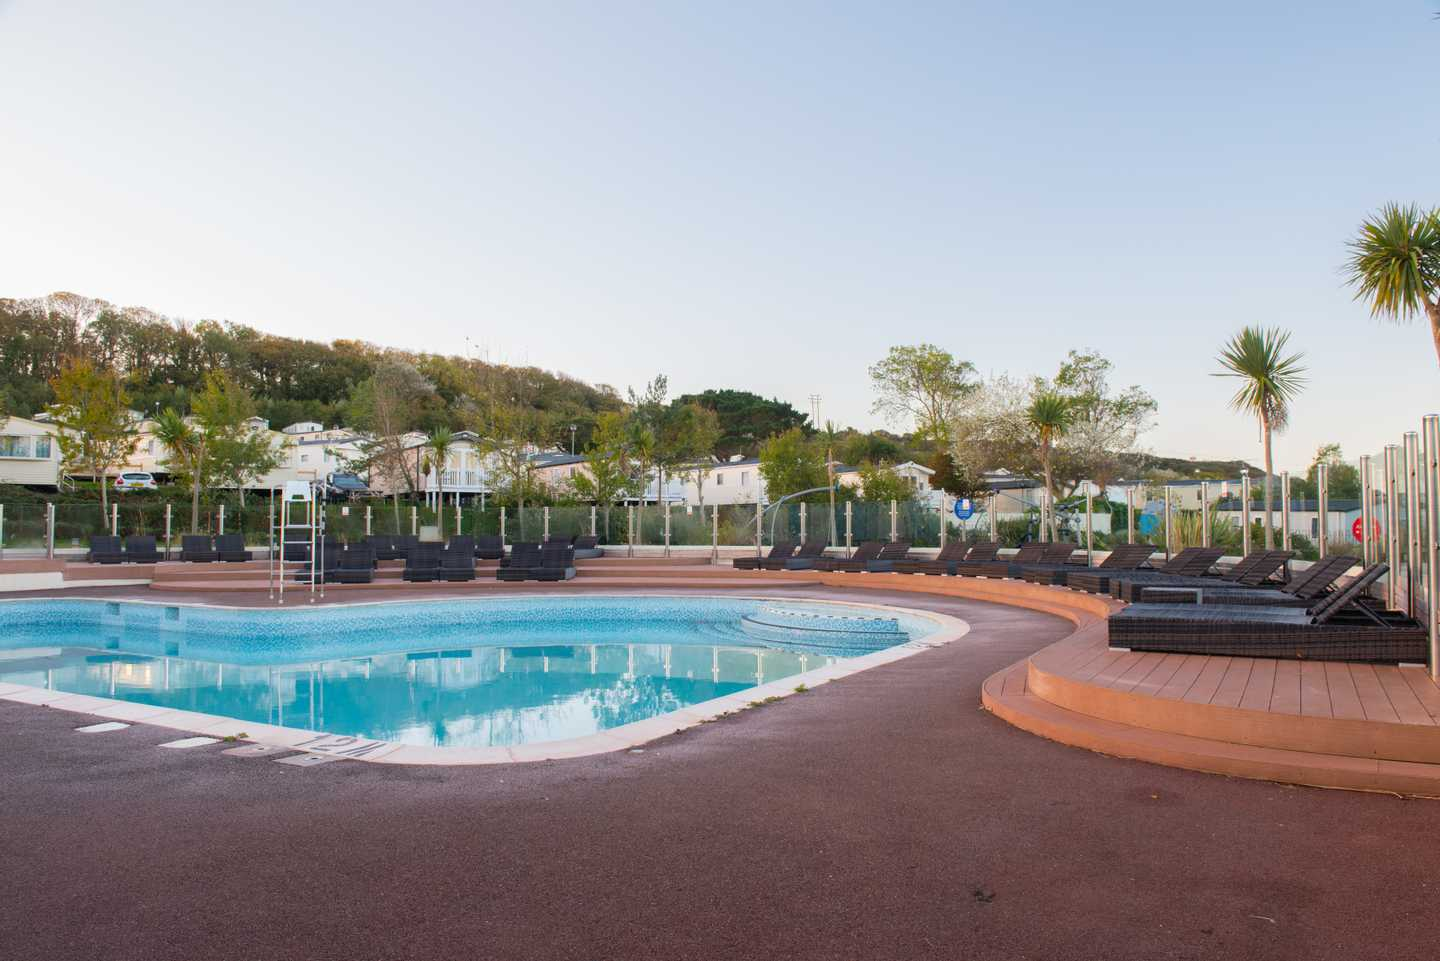 Outdoor pool with seating area at Littlesea